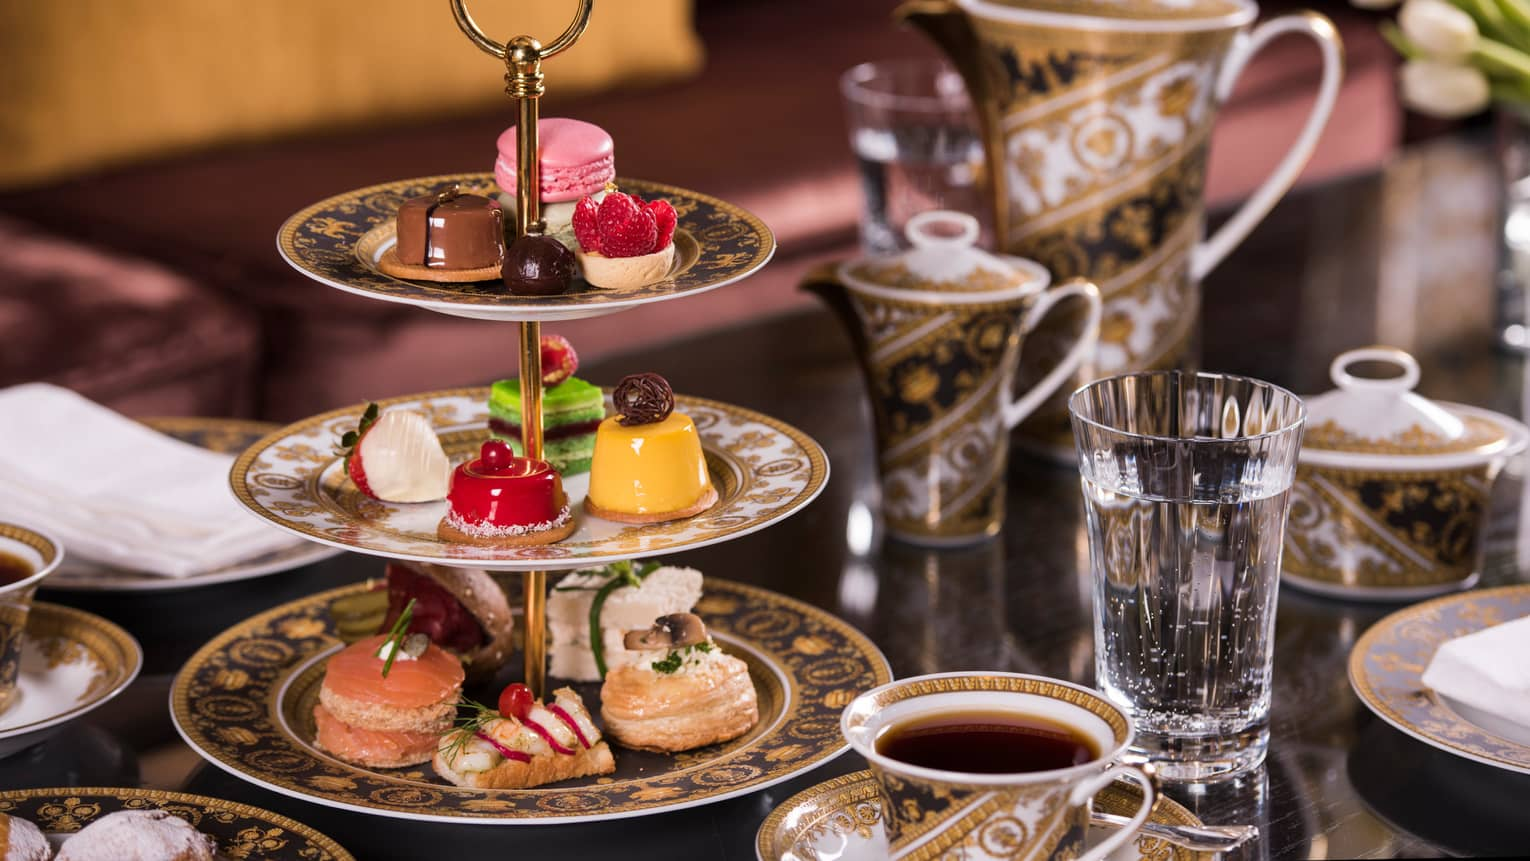 Arabesque High Tea tiered tray with small fancy desserts and finger sandwiches, teapot and mugs